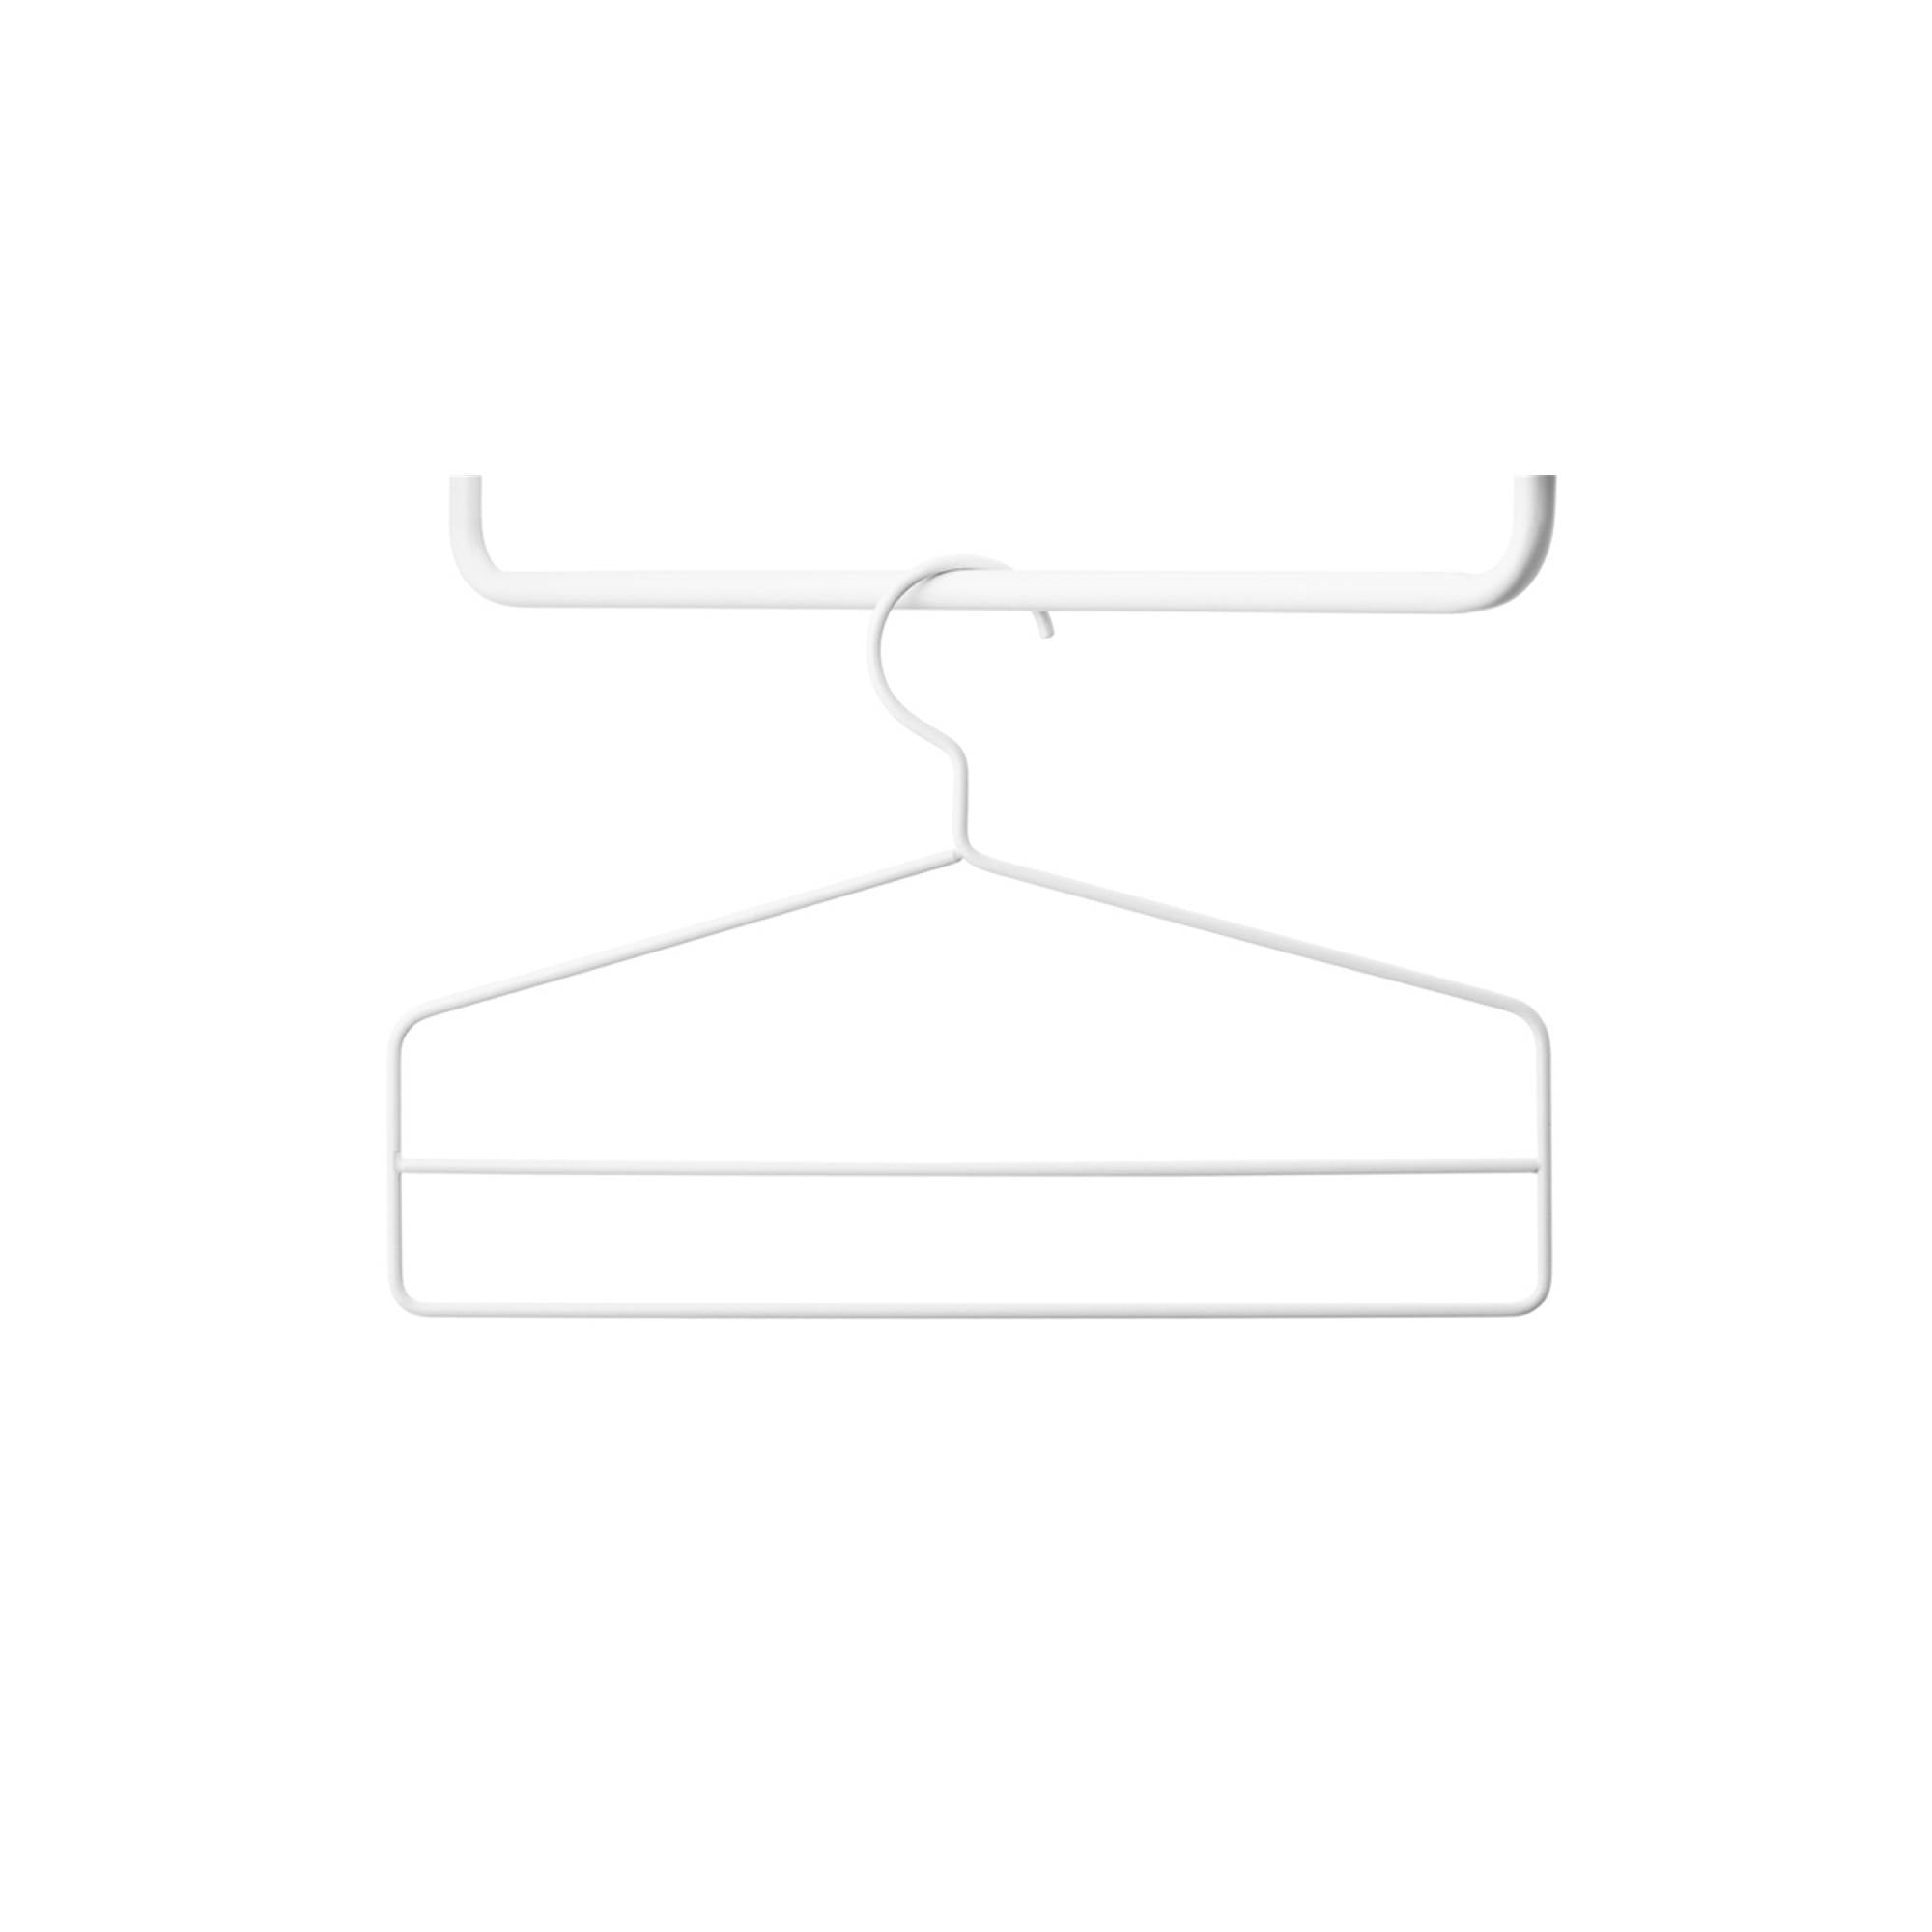 String System: String+ Accessories + Coat Hanger (4 Pack) + White